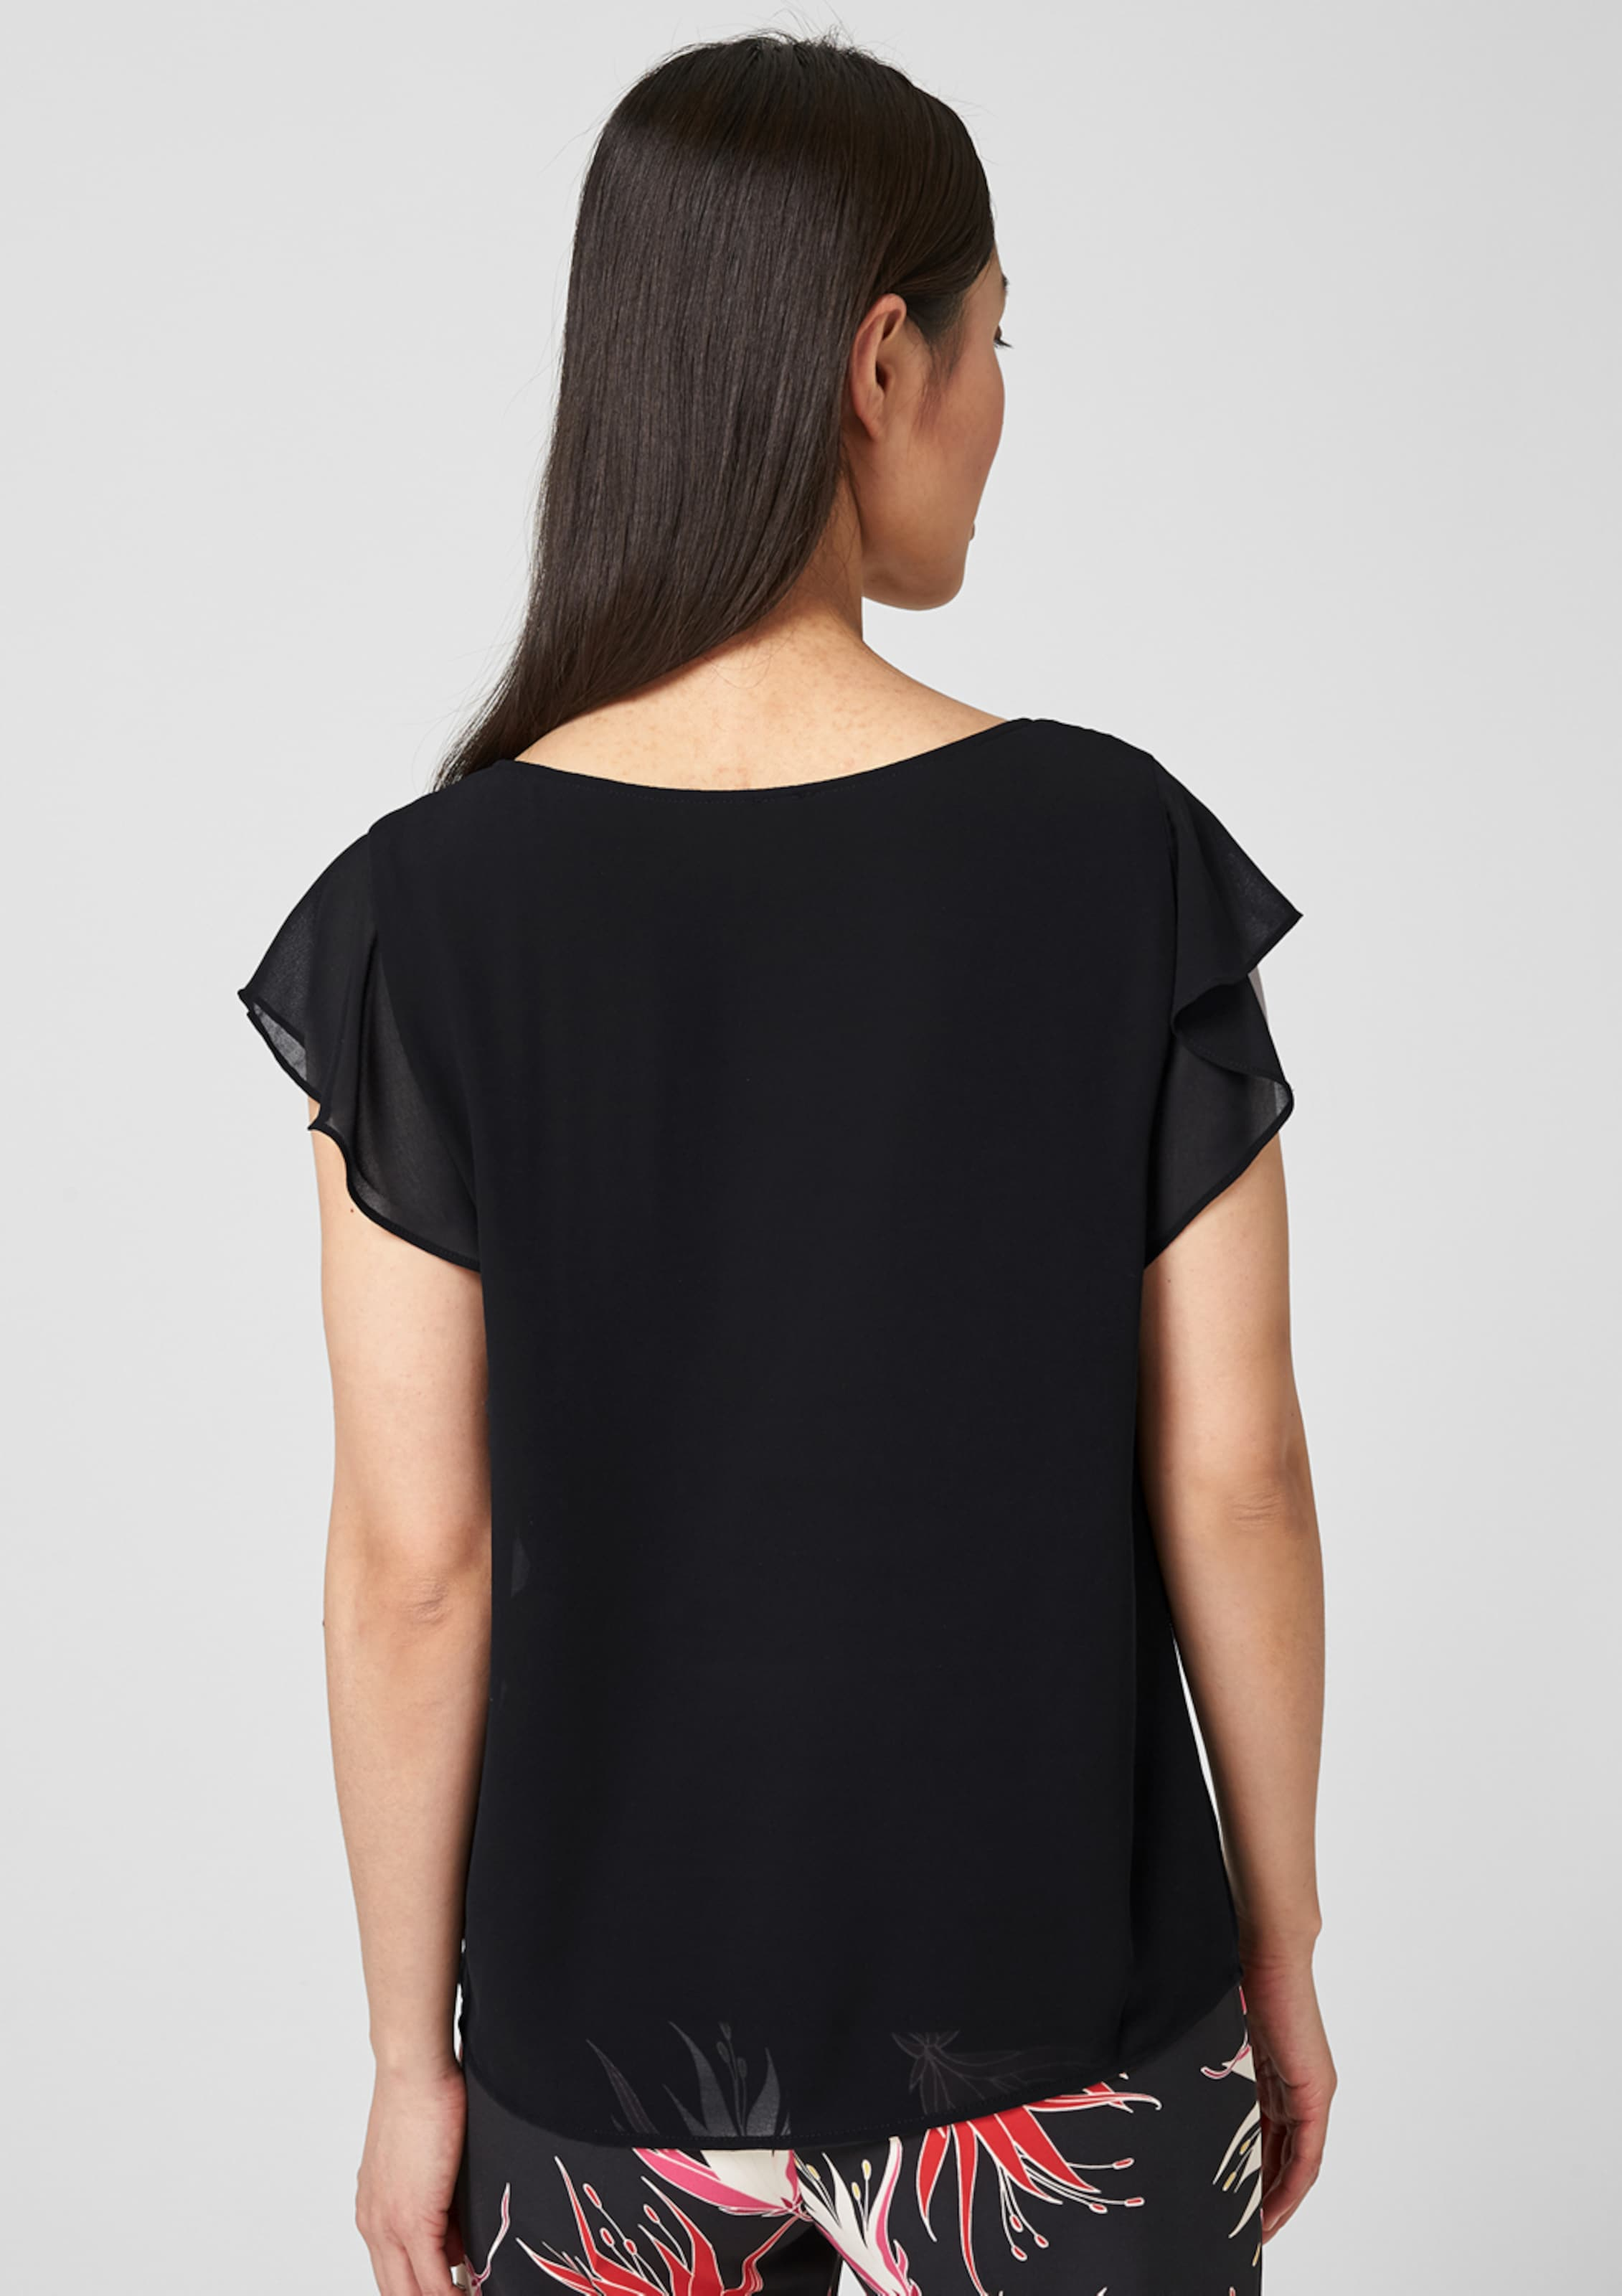 Black Shirt In Schwarz S oliver Label kTOuPXZi